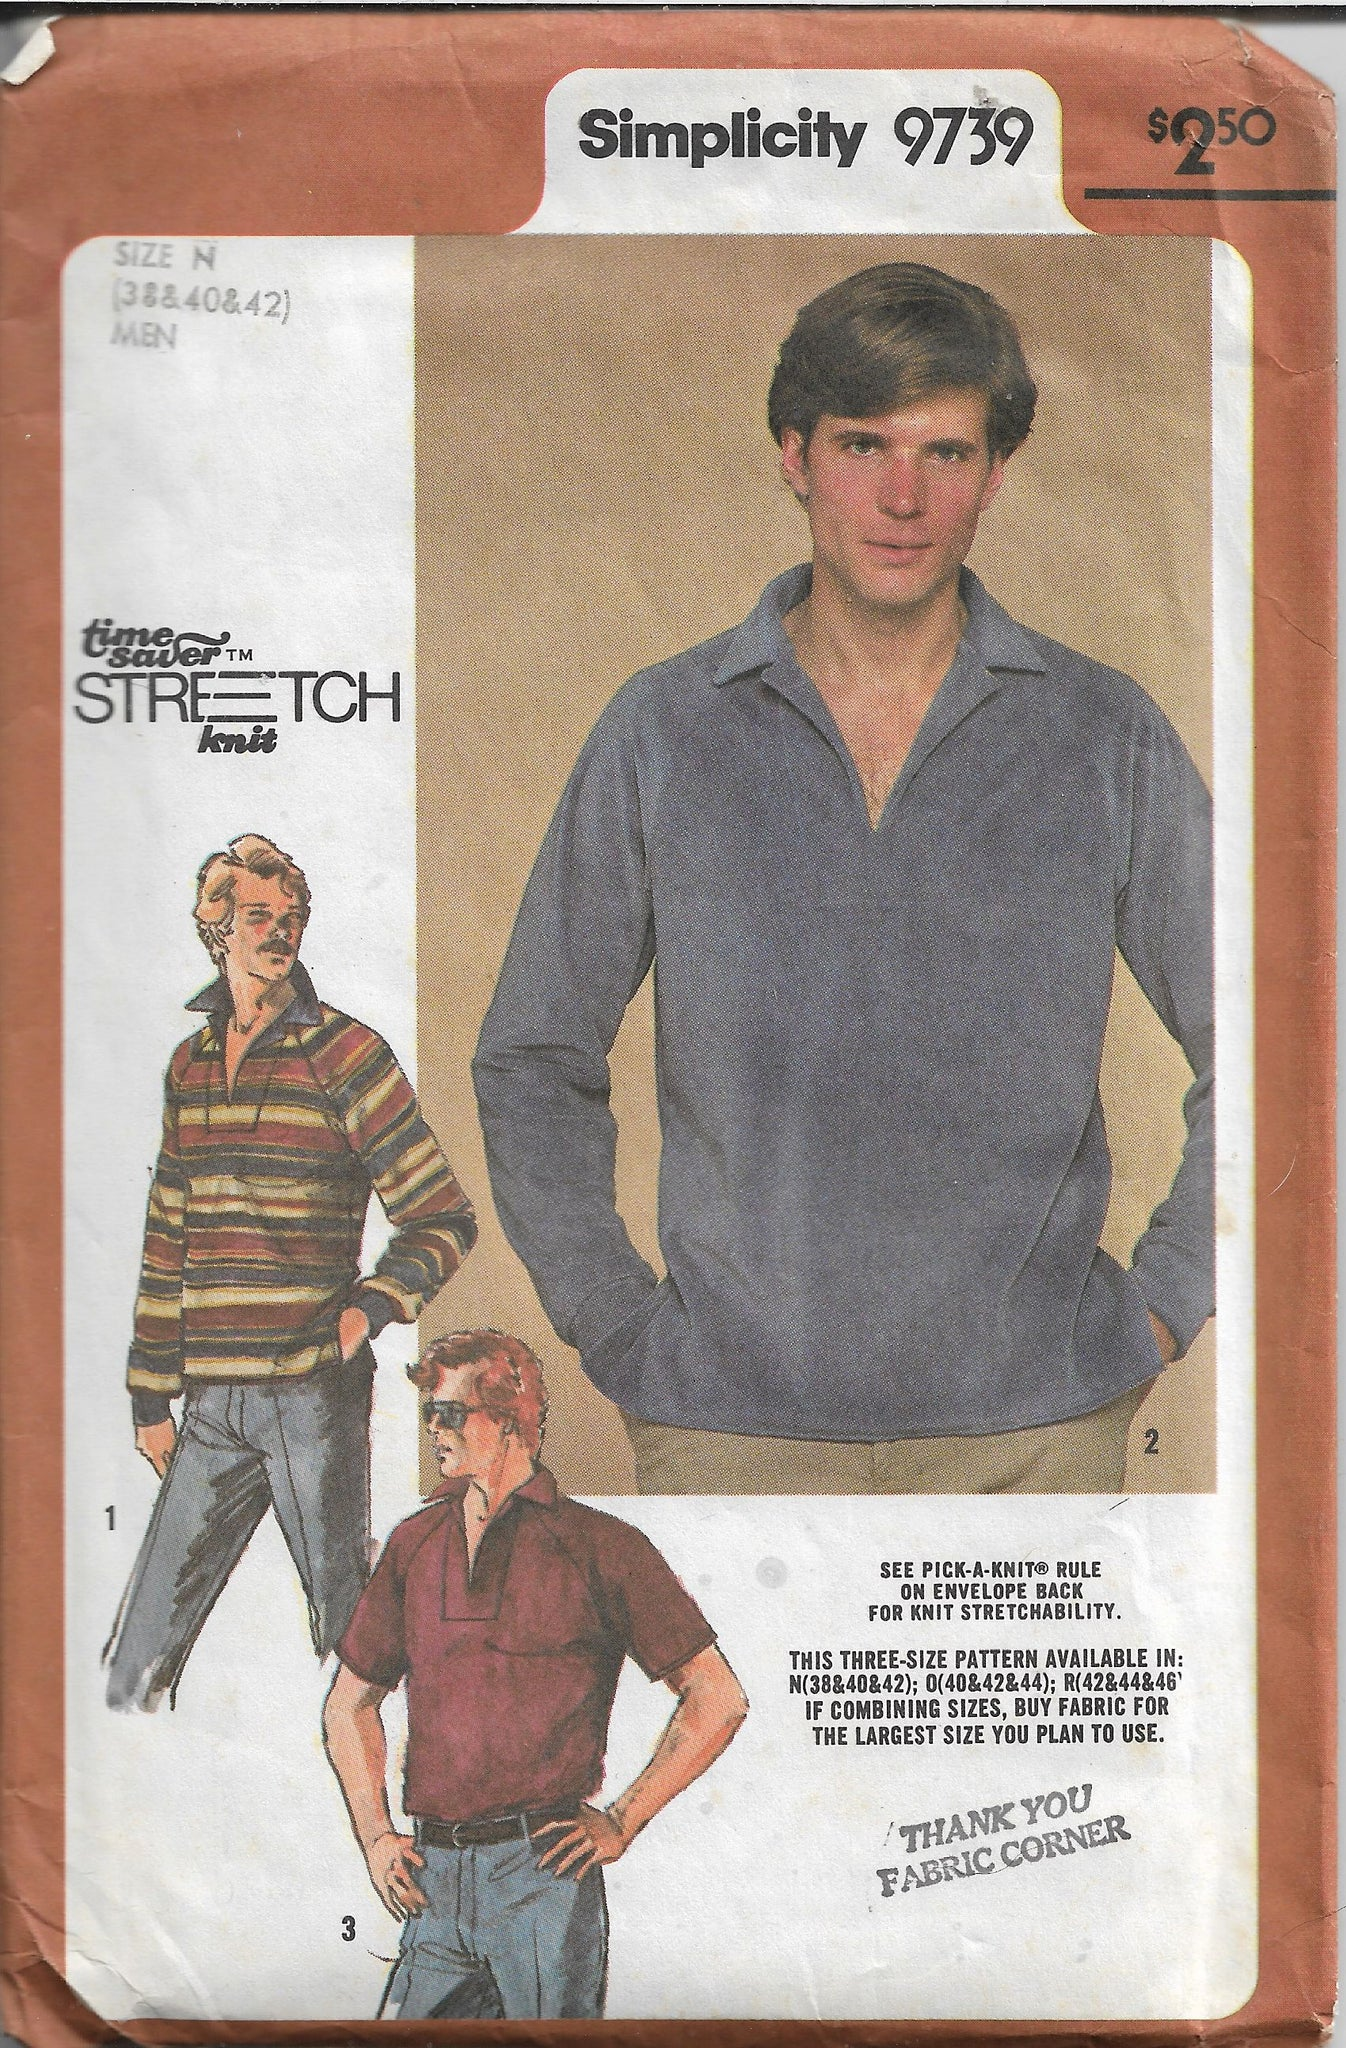 Simplicity 9739 Mens Pullover Top Shirt Vintage Sewing Pattern 1980s - VintageStitching - Vintage Sewing Patterns